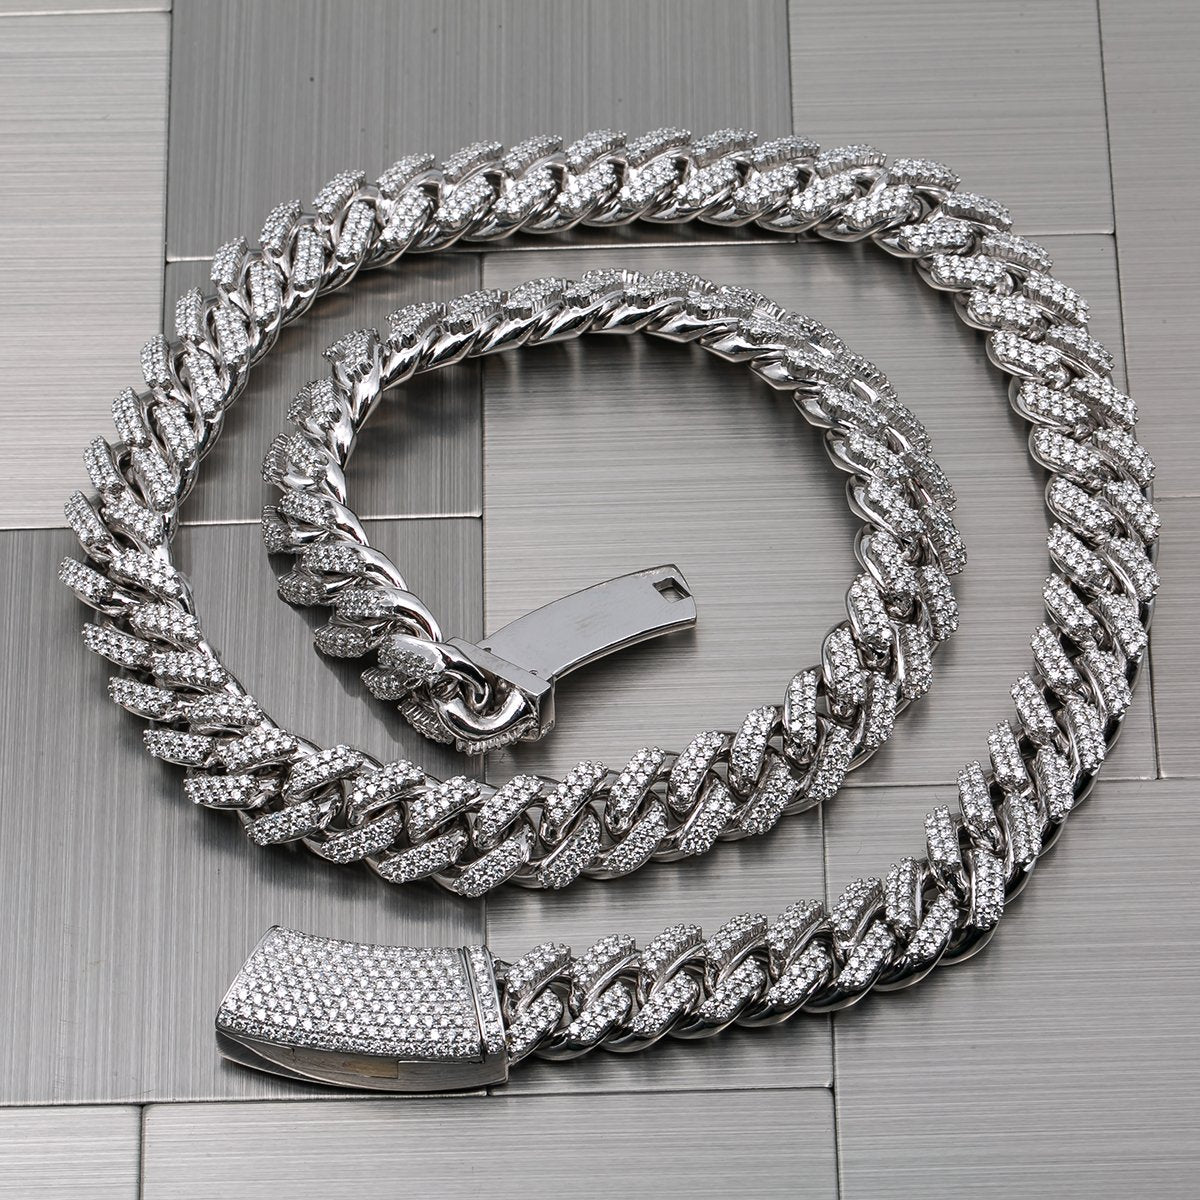 14K White Gold Iced Out Diamond Cuban Link Chain | 20.61 Carats | 12 MM Width | 24 Inch Length